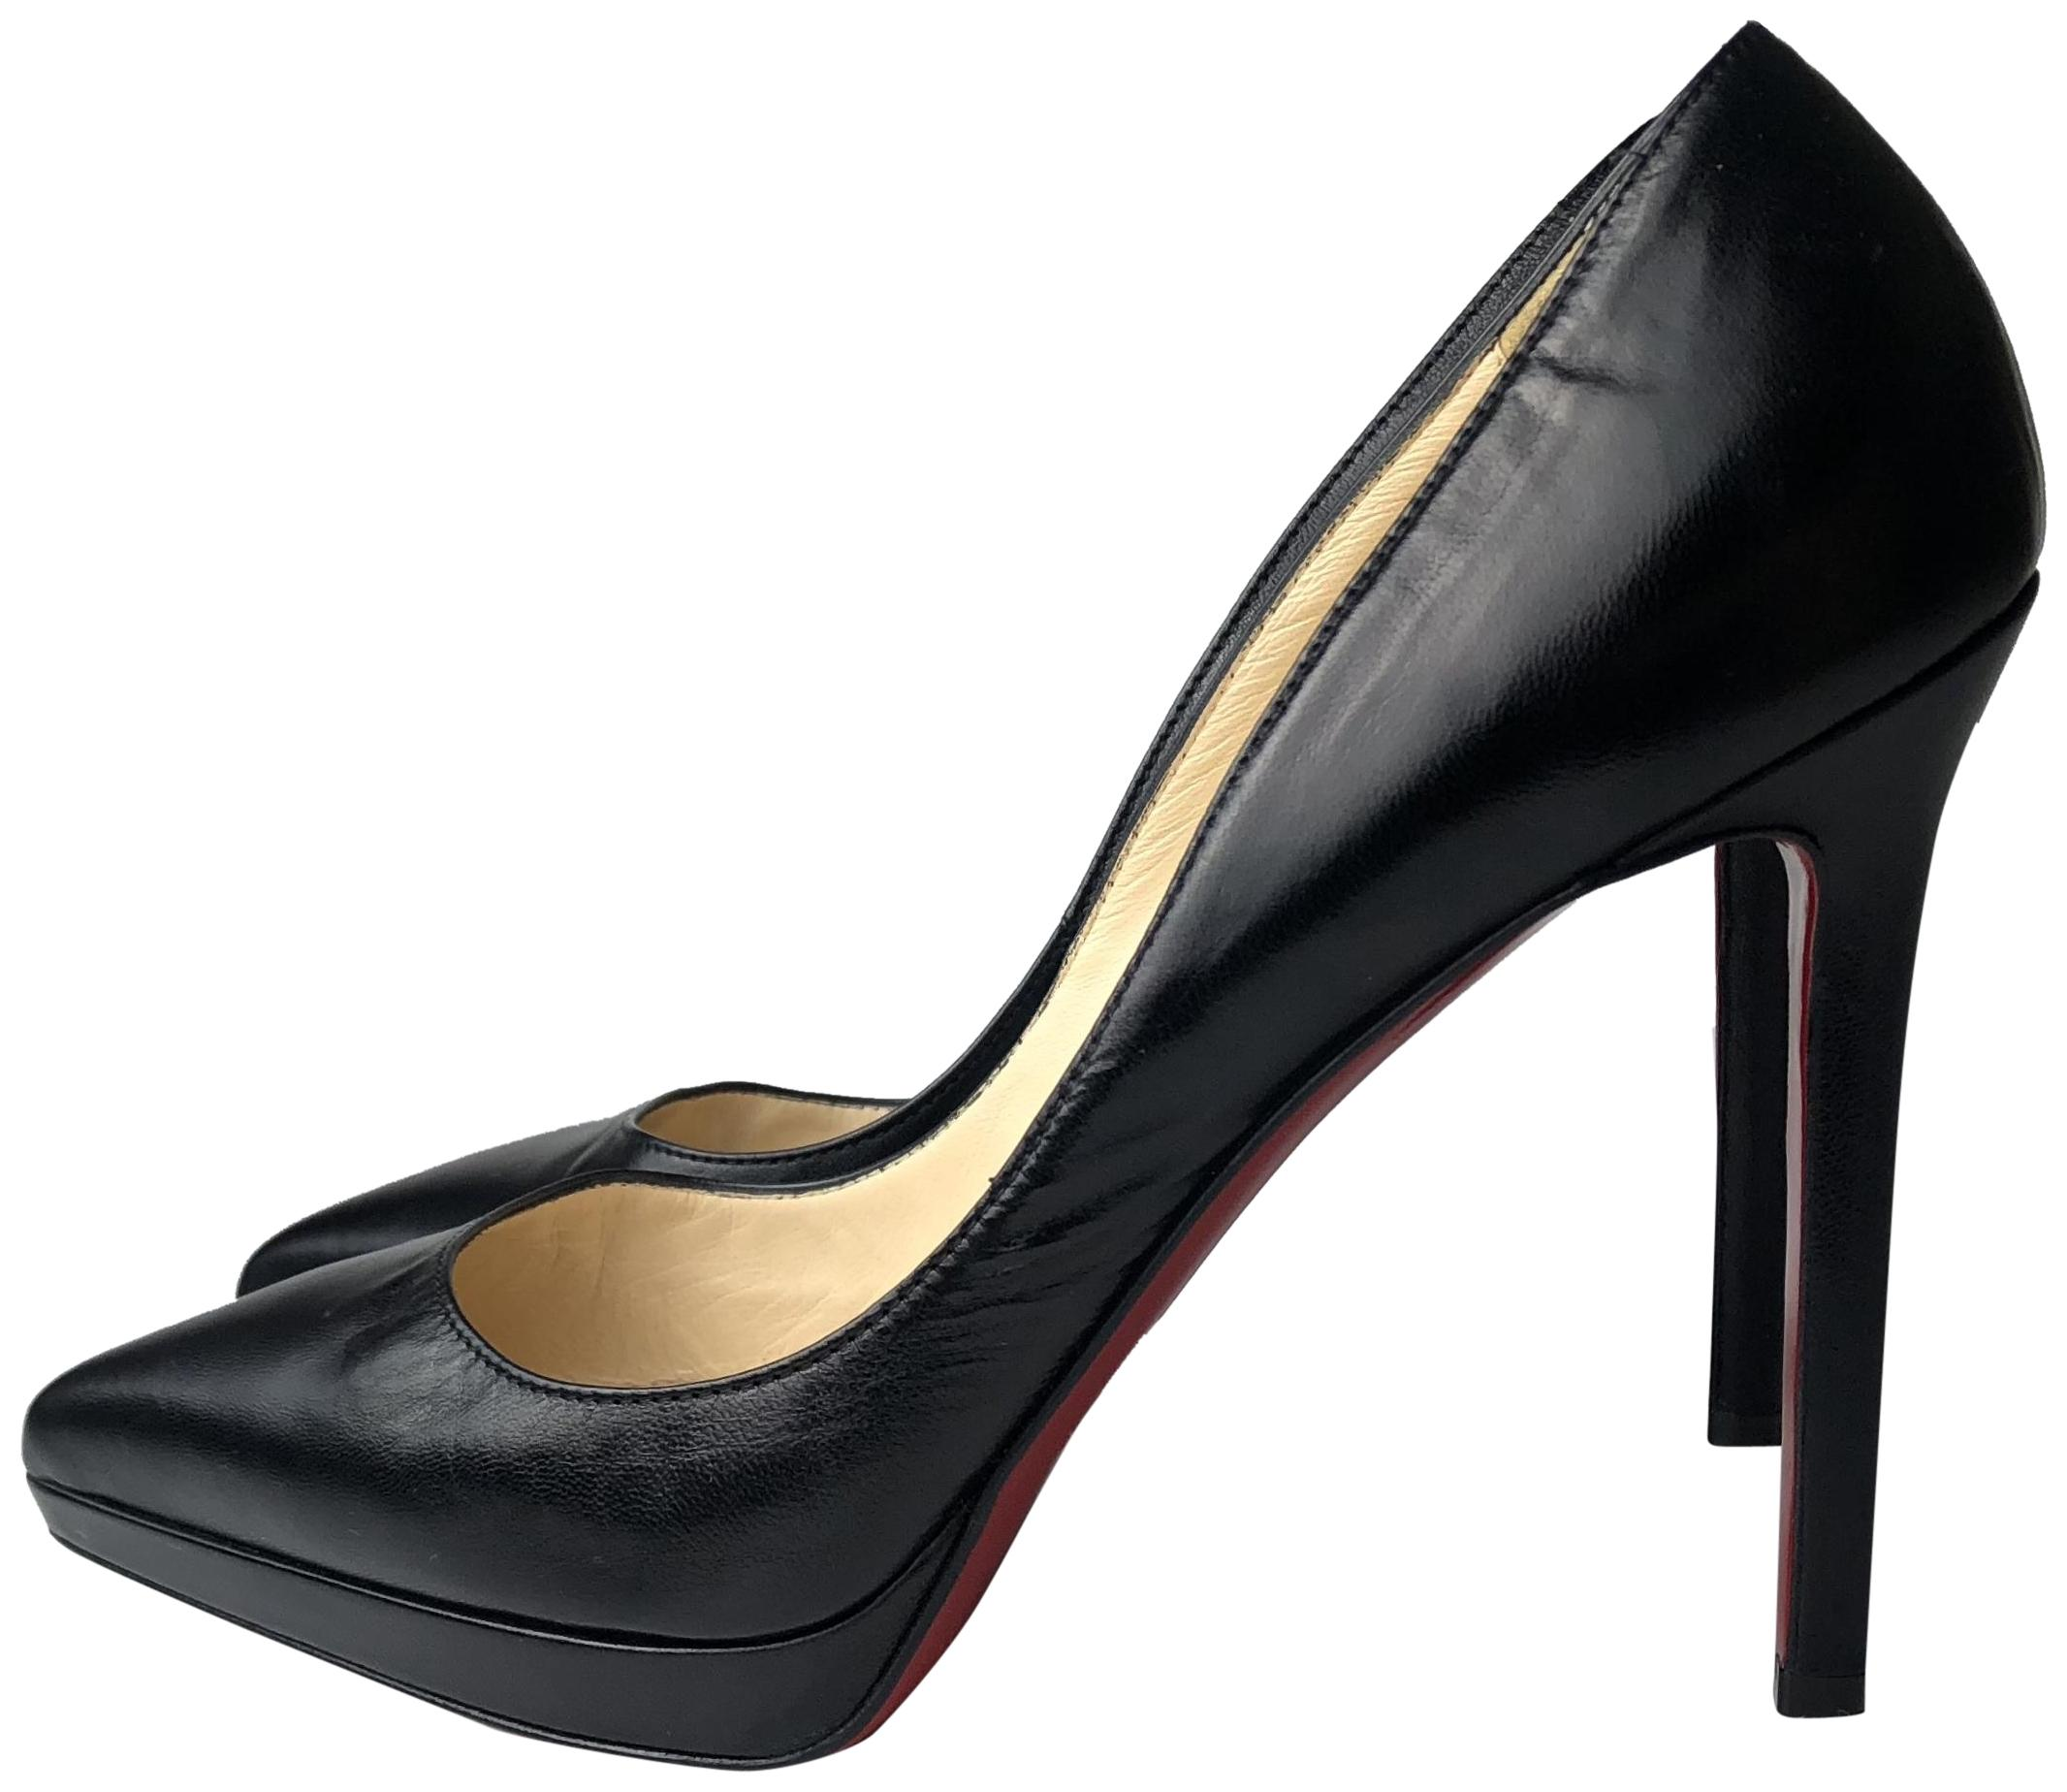 d60c280bed50 Christian Louboutin Louboutin Louboutin Black Pigalle Plato 120 Leather  Heels Pumps Size EU 38.5 (Approx